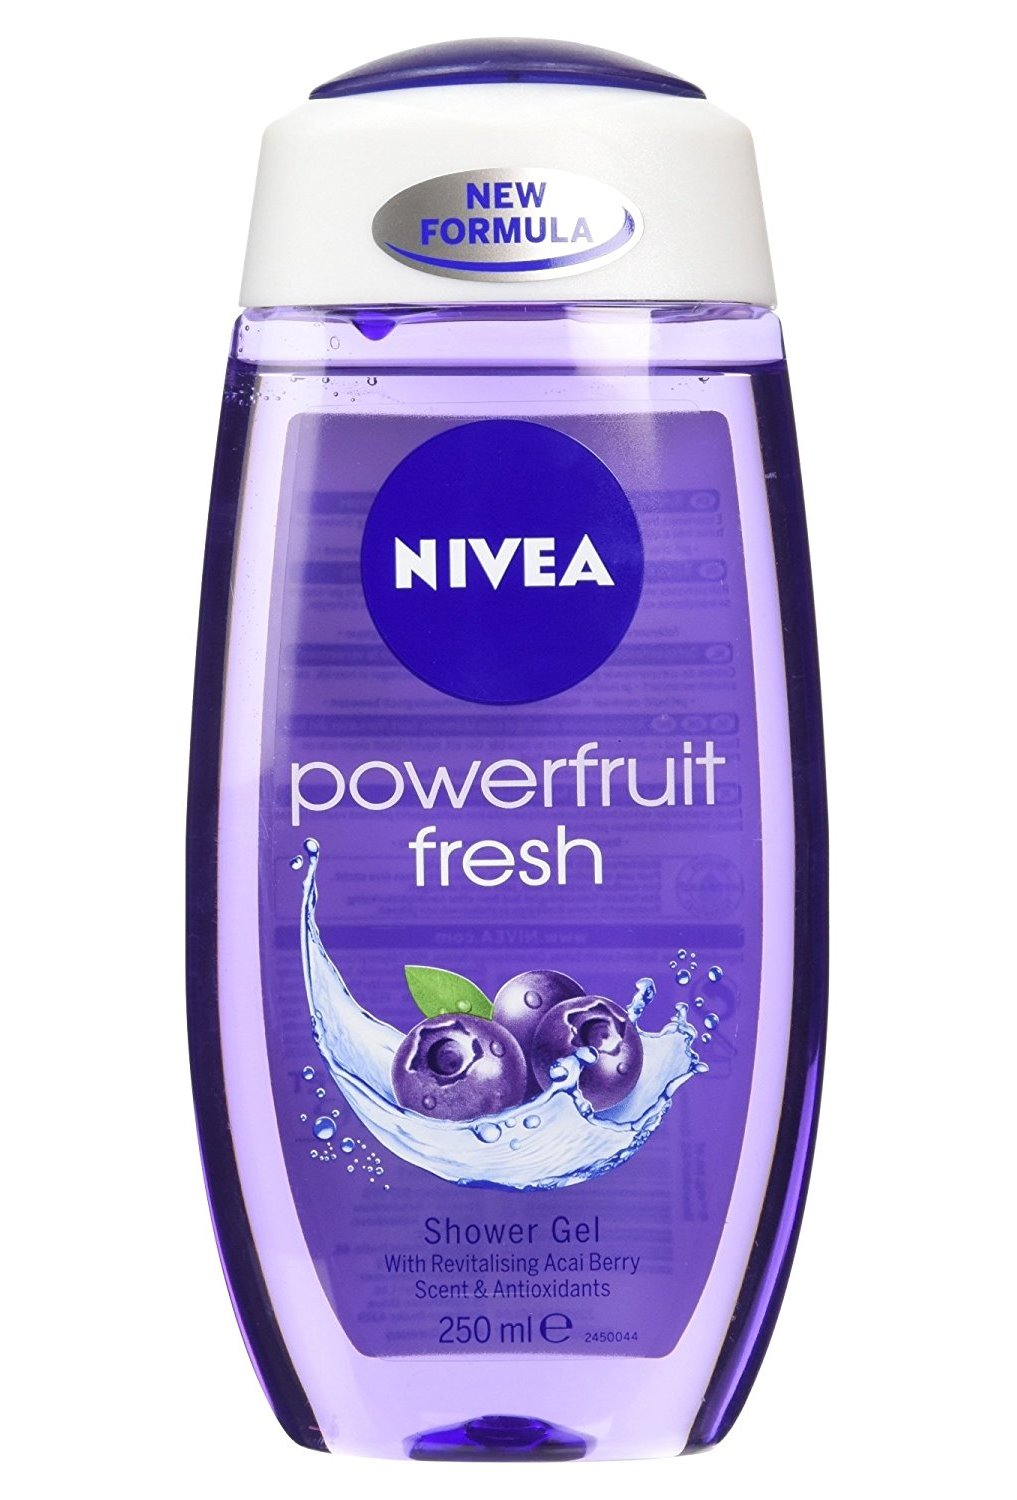 Nivea Powerfruit Fresh Shower Gel Review